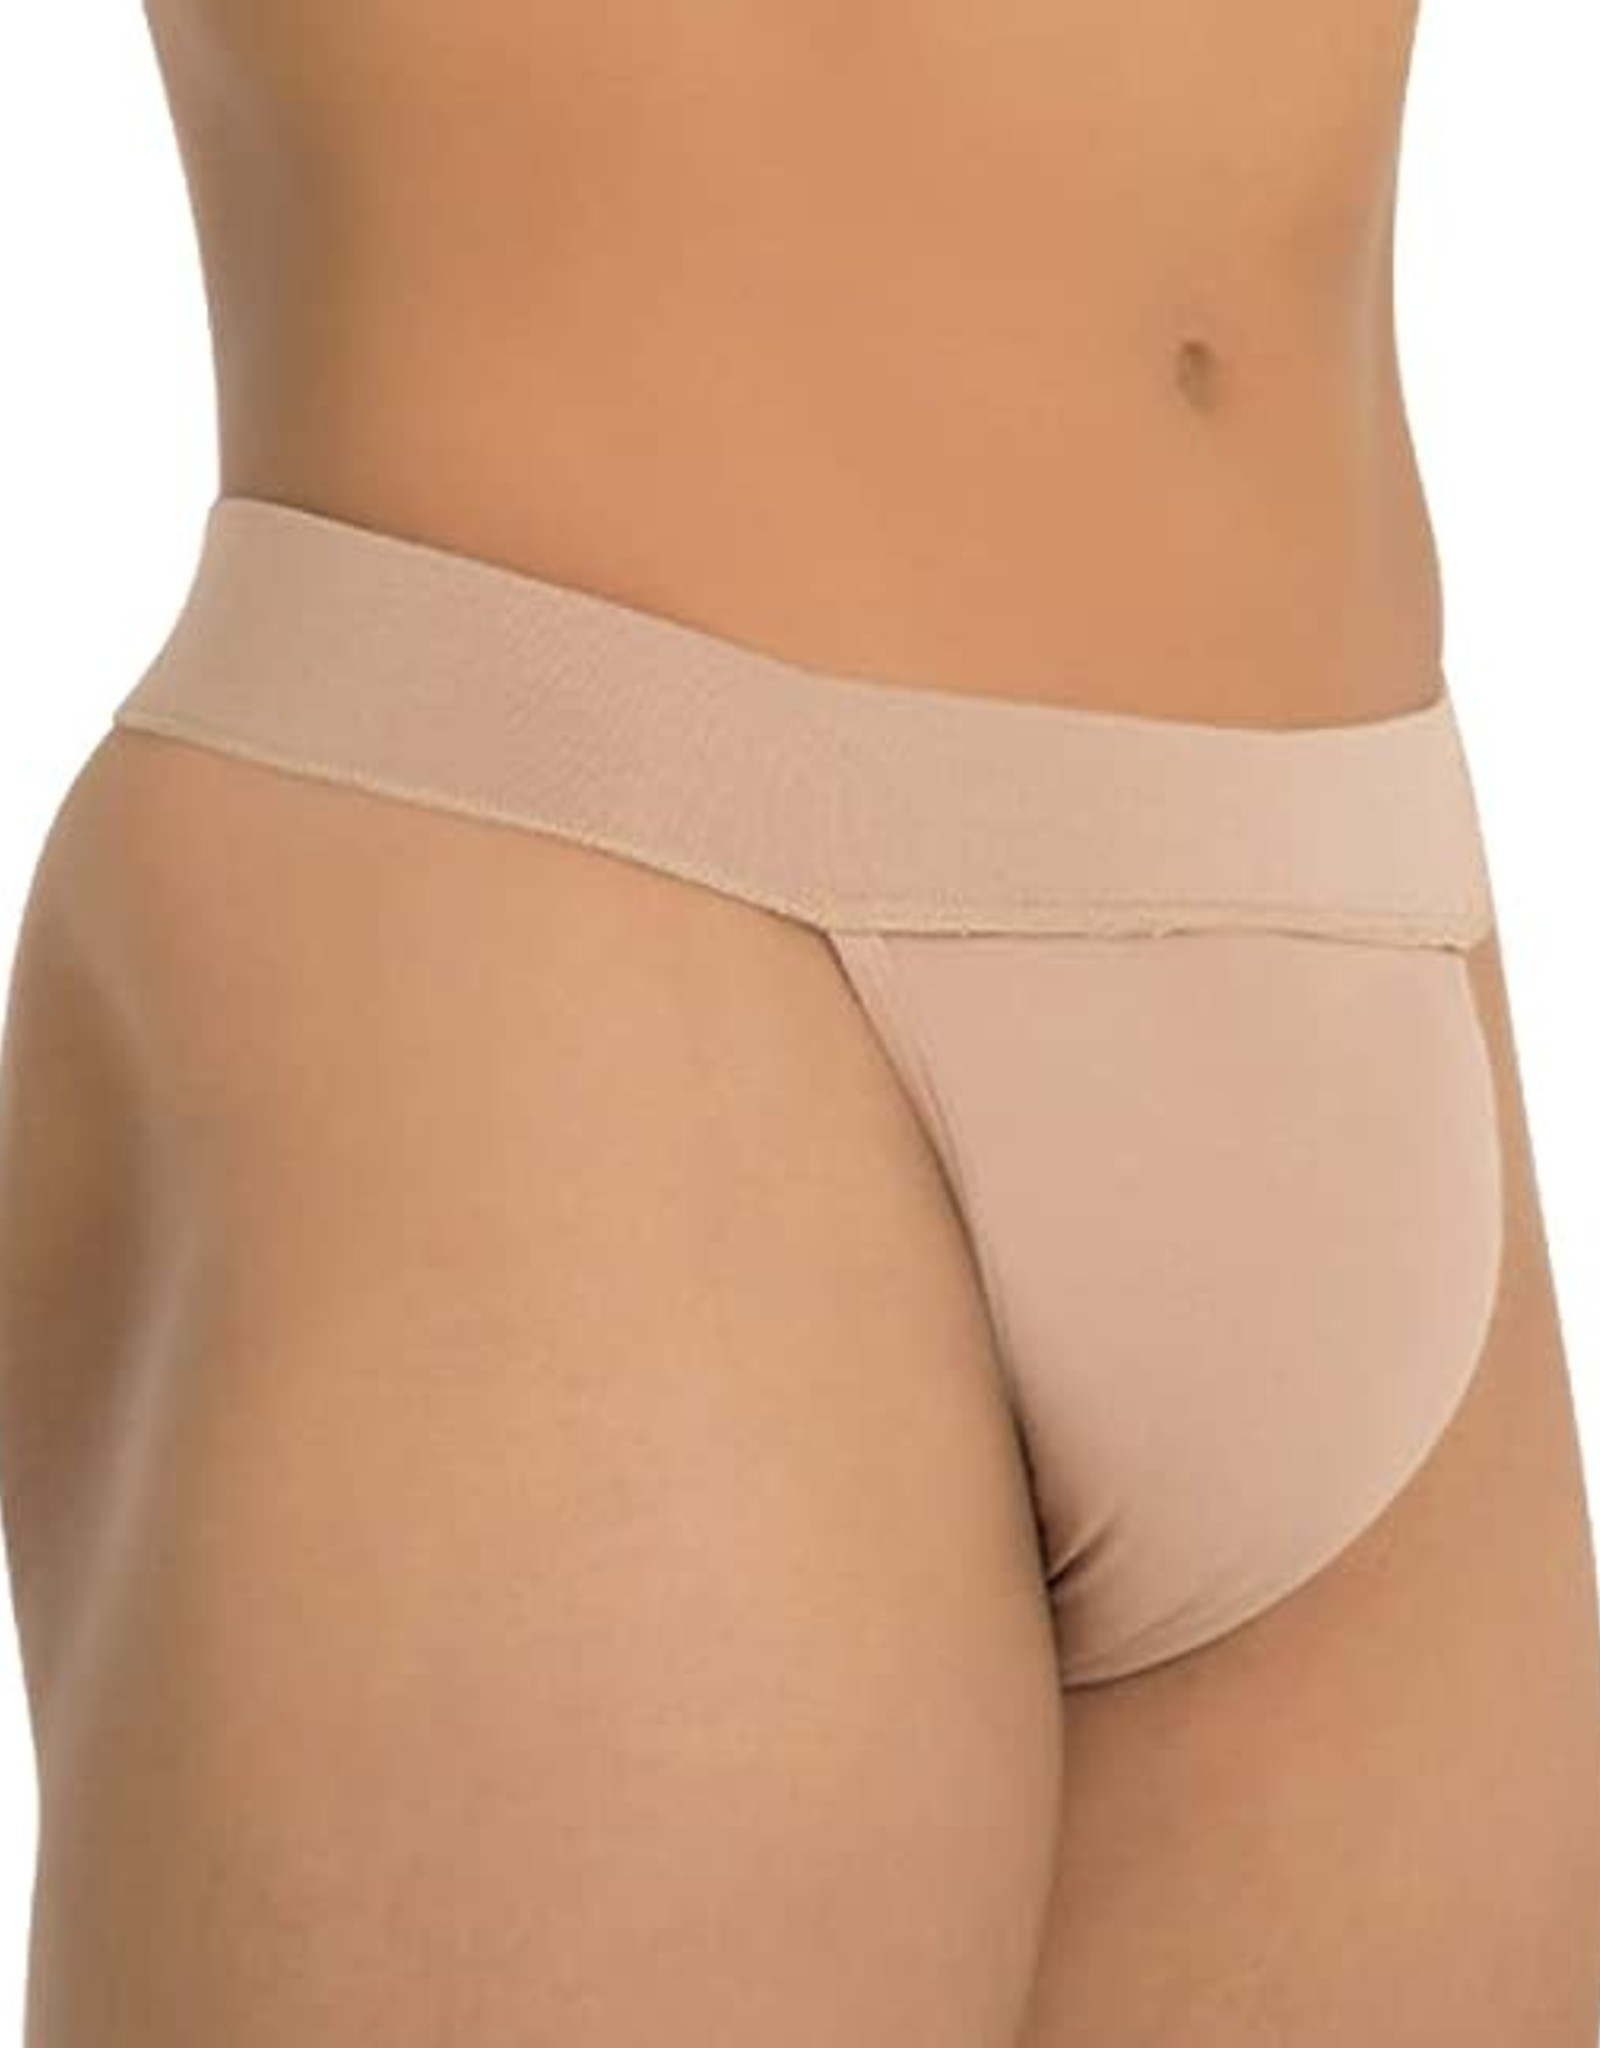 Body Wrappers Body Wrappers Men's Thong Dance Belt M003